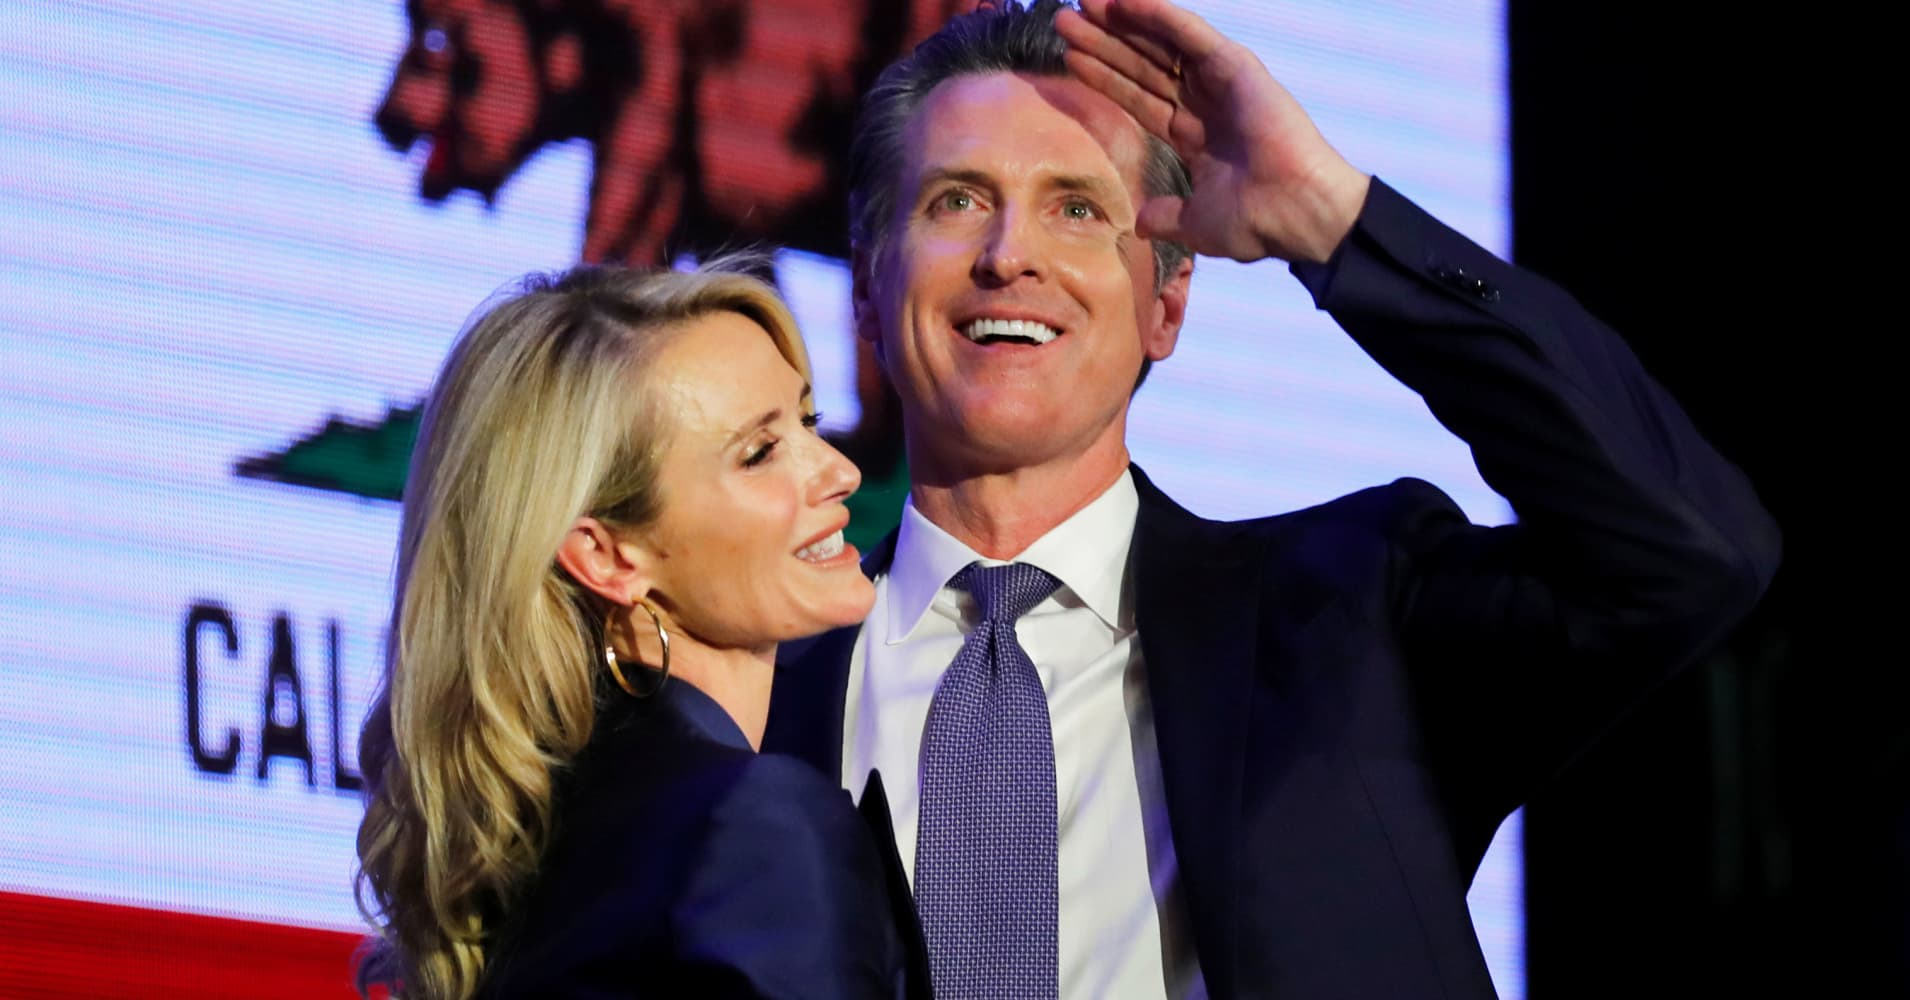 Gavin Newsom takes the reins as California's newly-elected governor on Monday, but some are already worried about the cost of his 'list of promises'